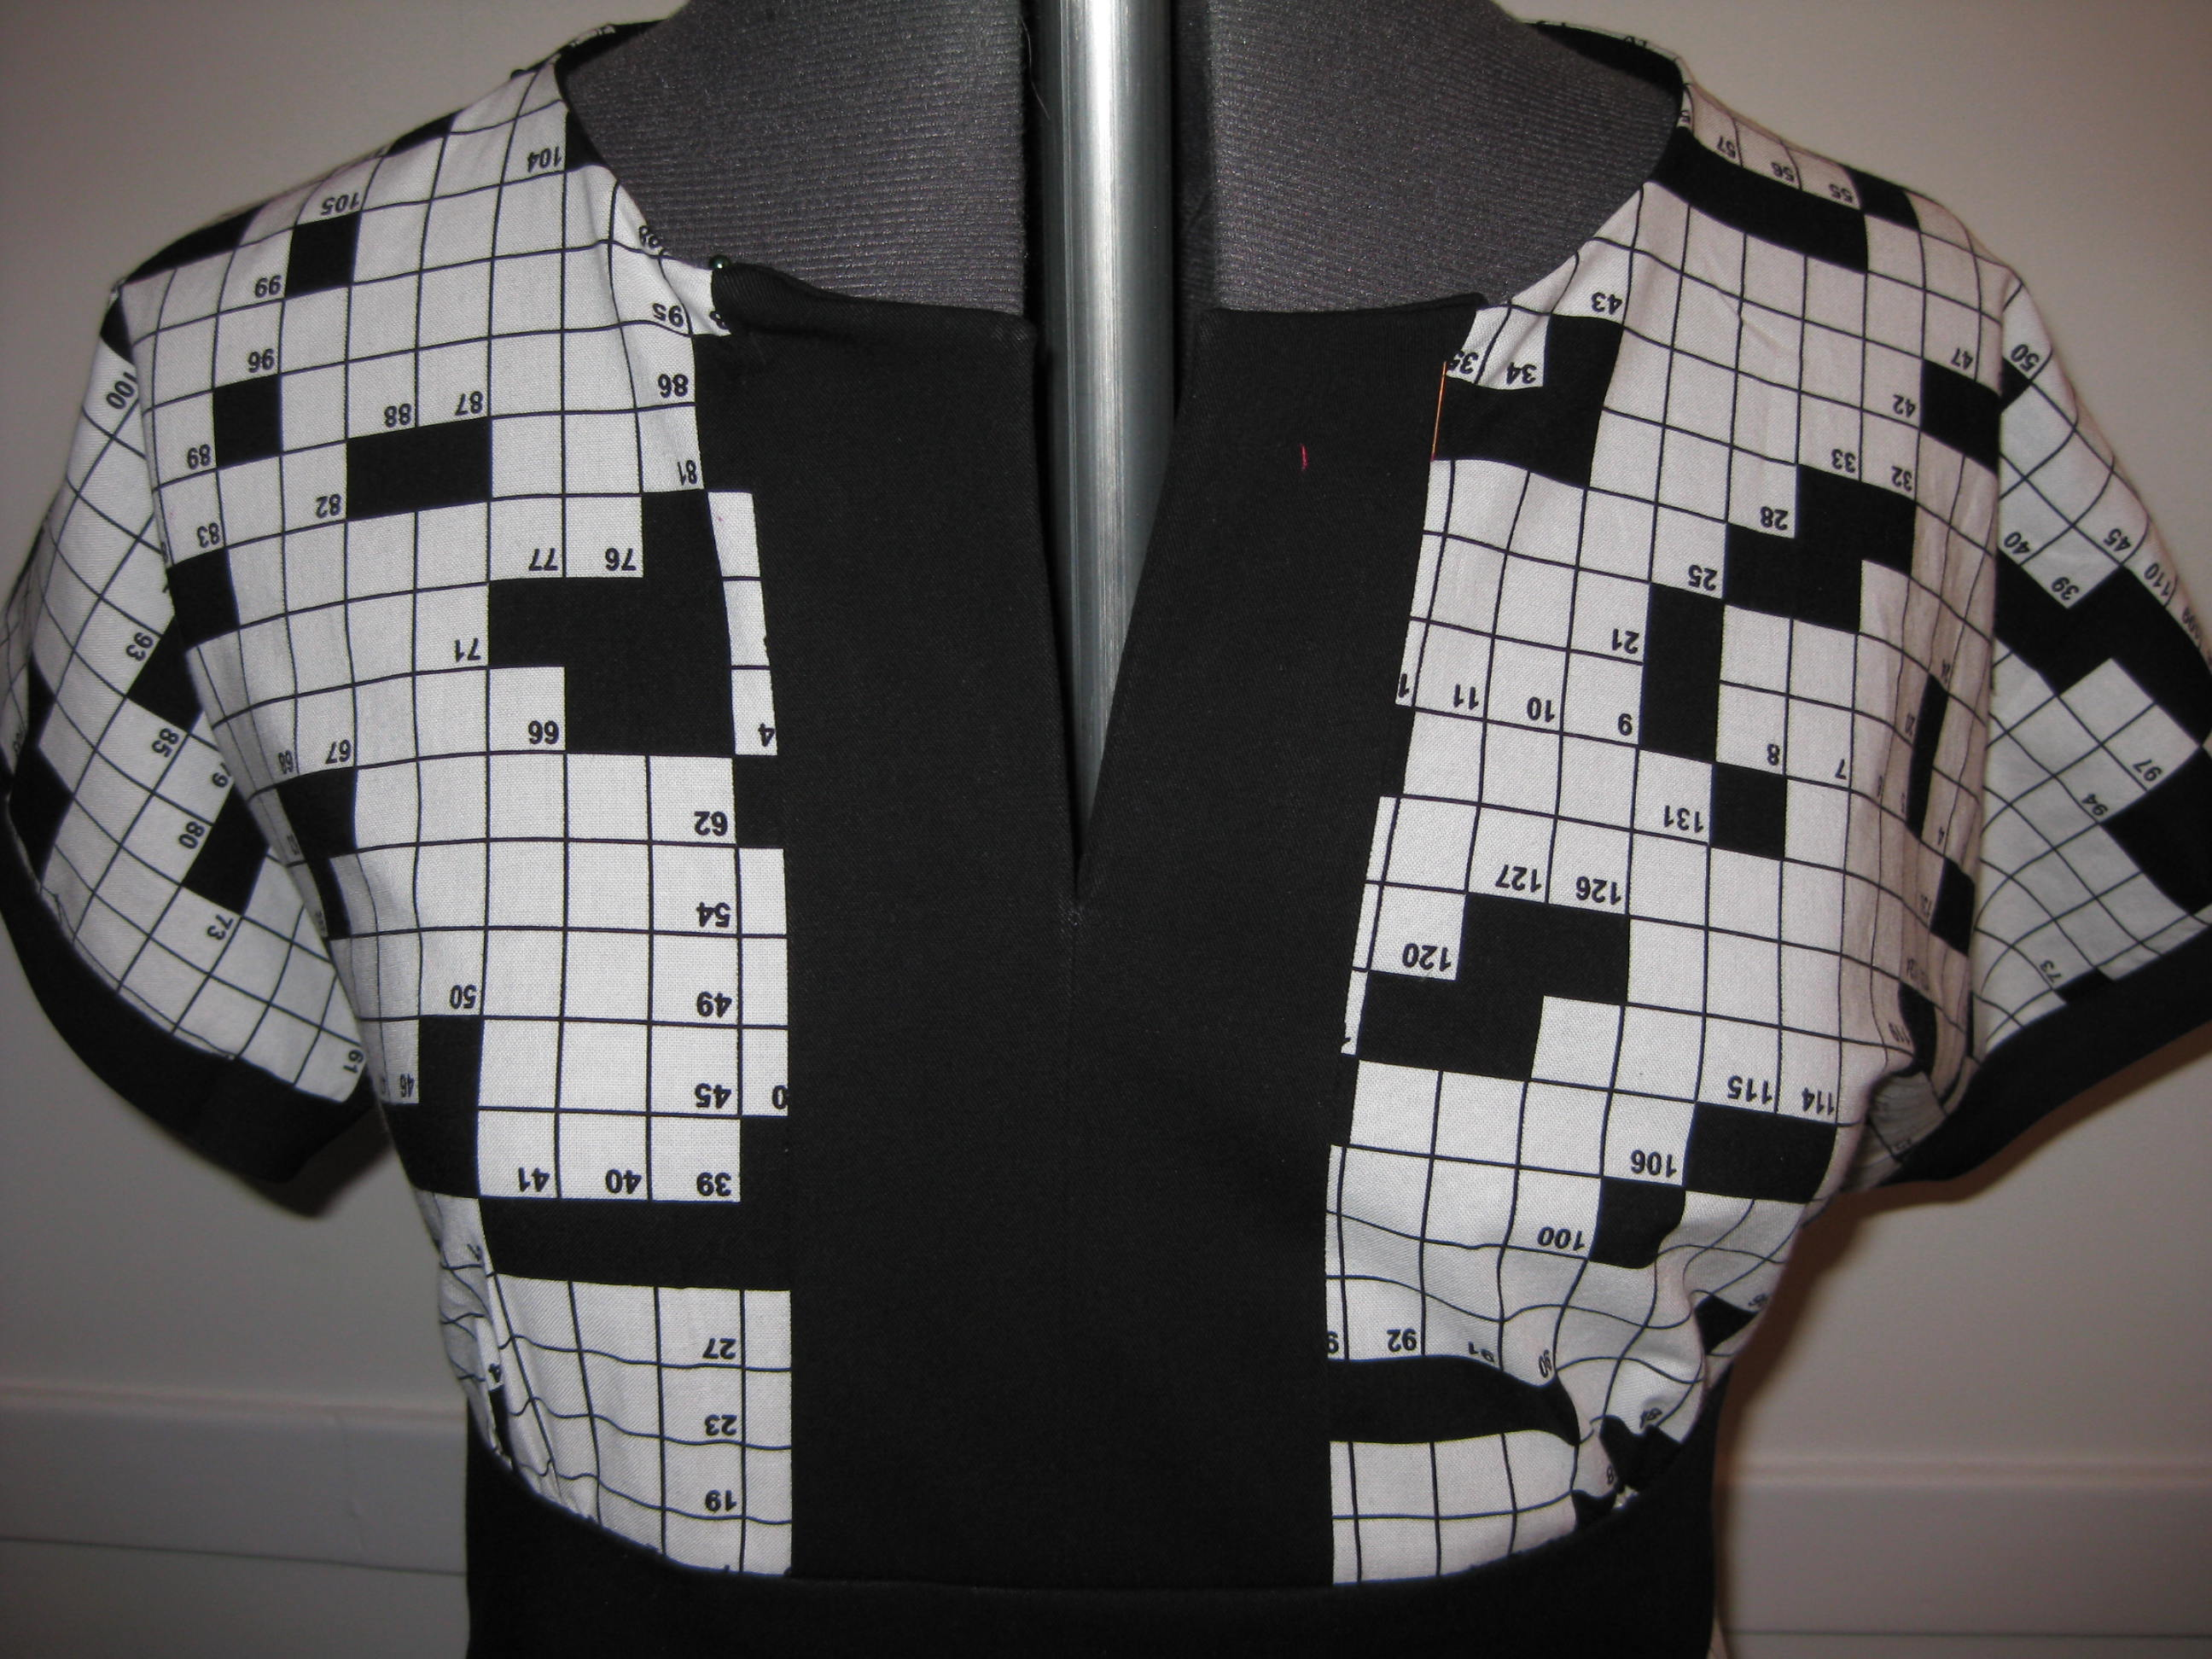 2009 crossword dress